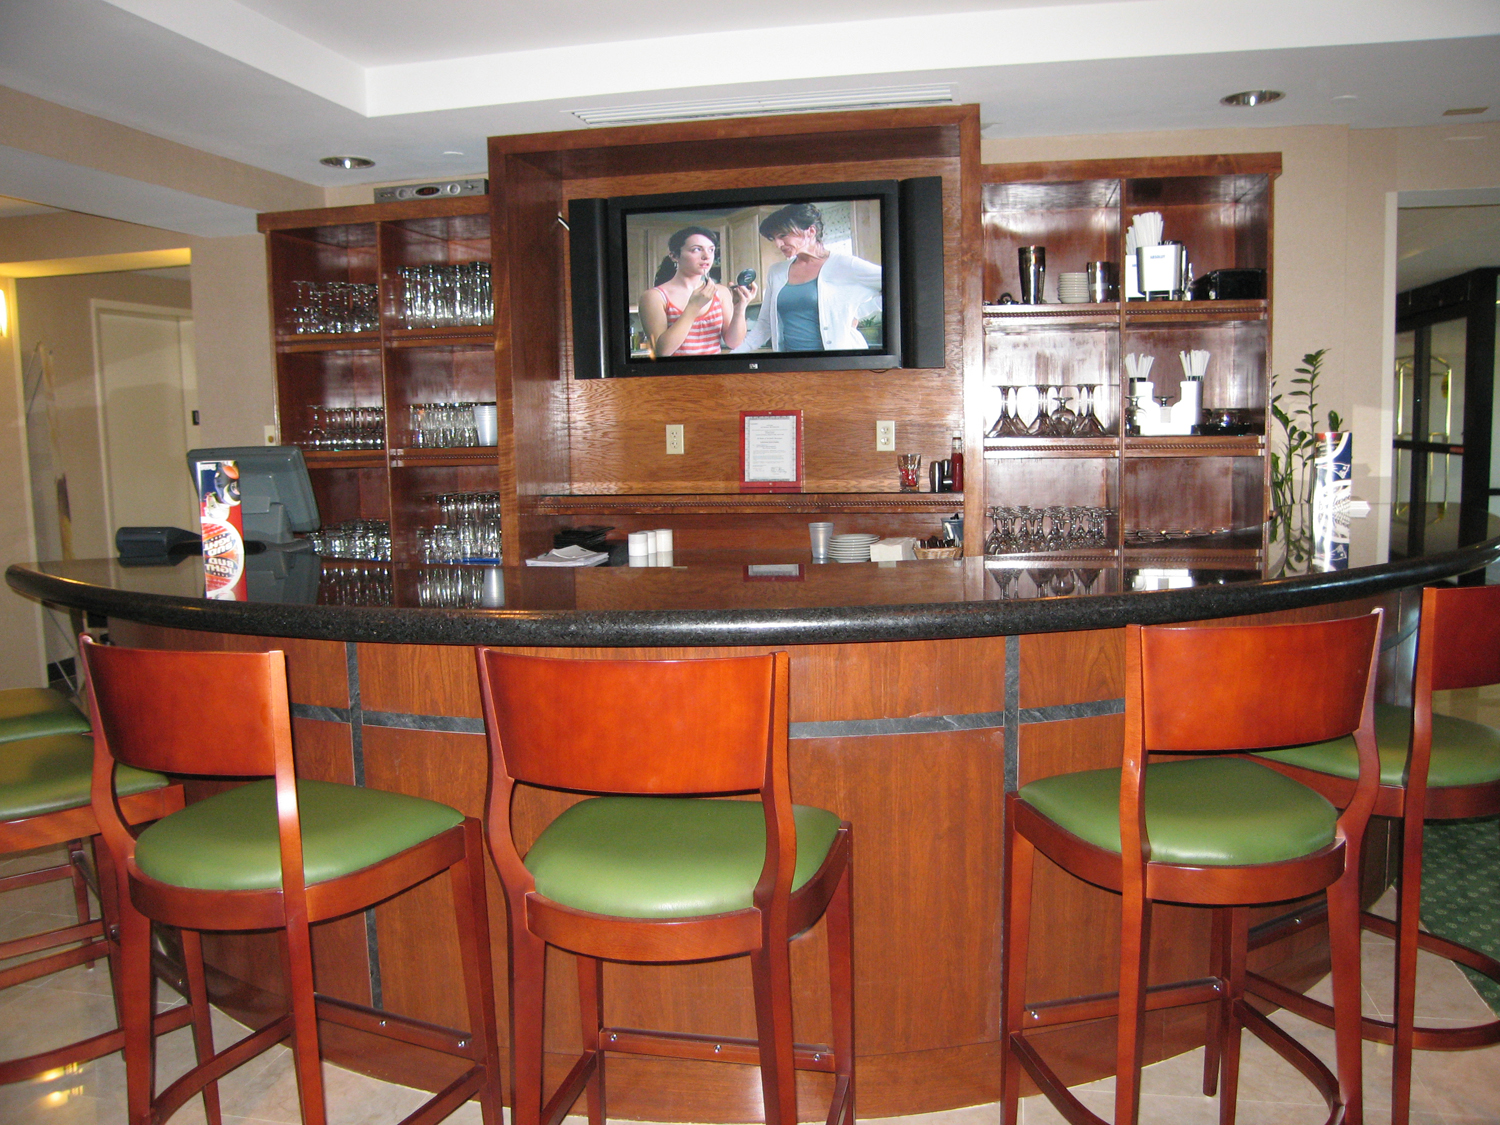 Marriott bar